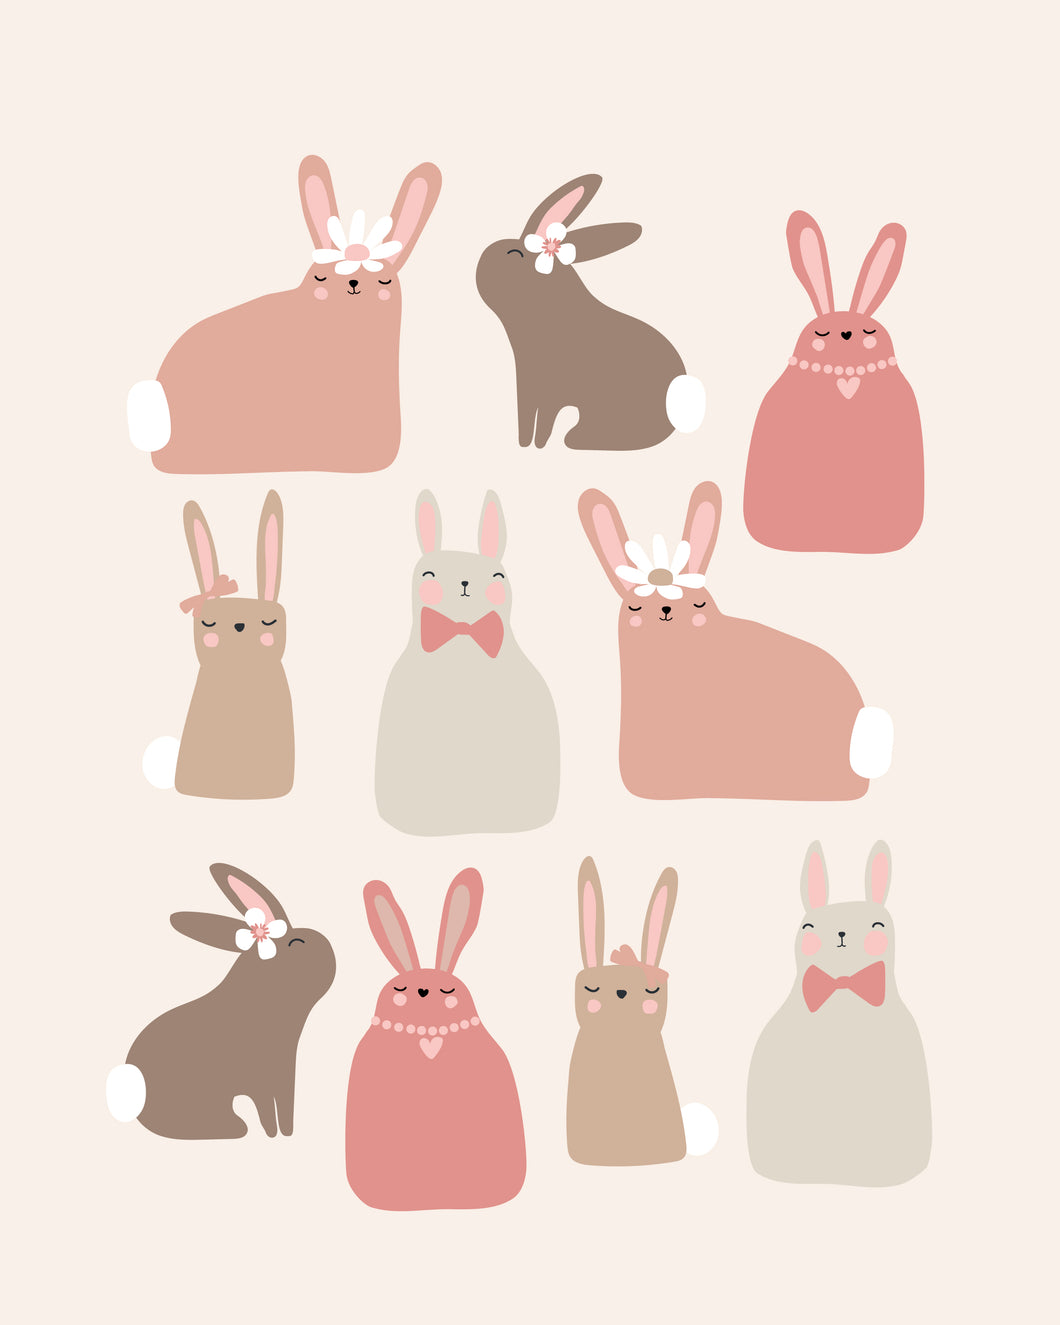 Hoppy Easter Bunnies - pink